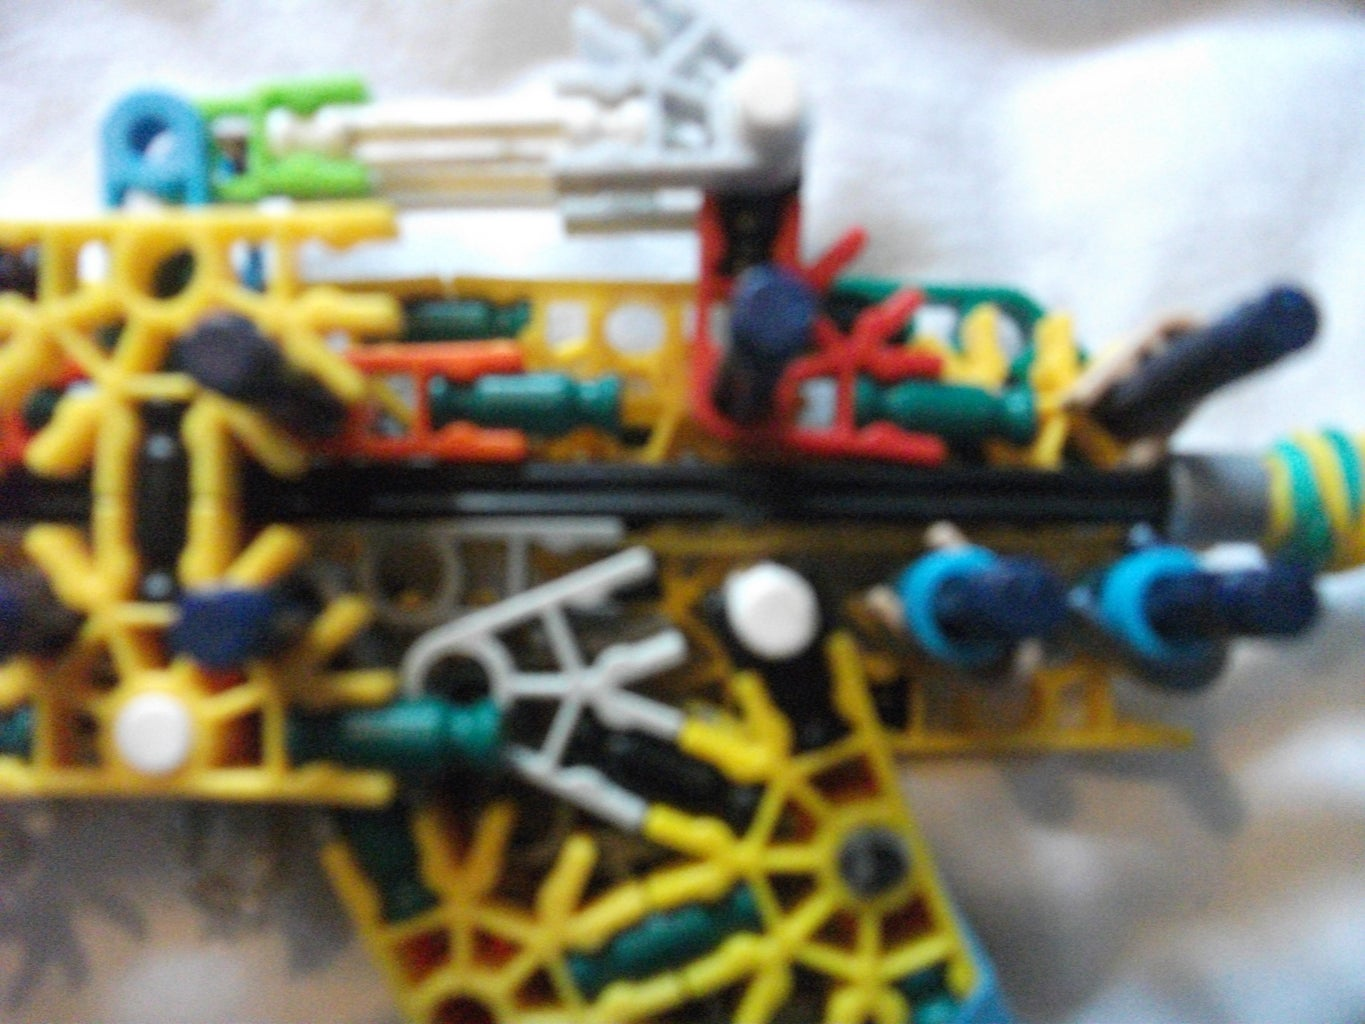 Knex Pistol, Weekly Play Challenge Entry